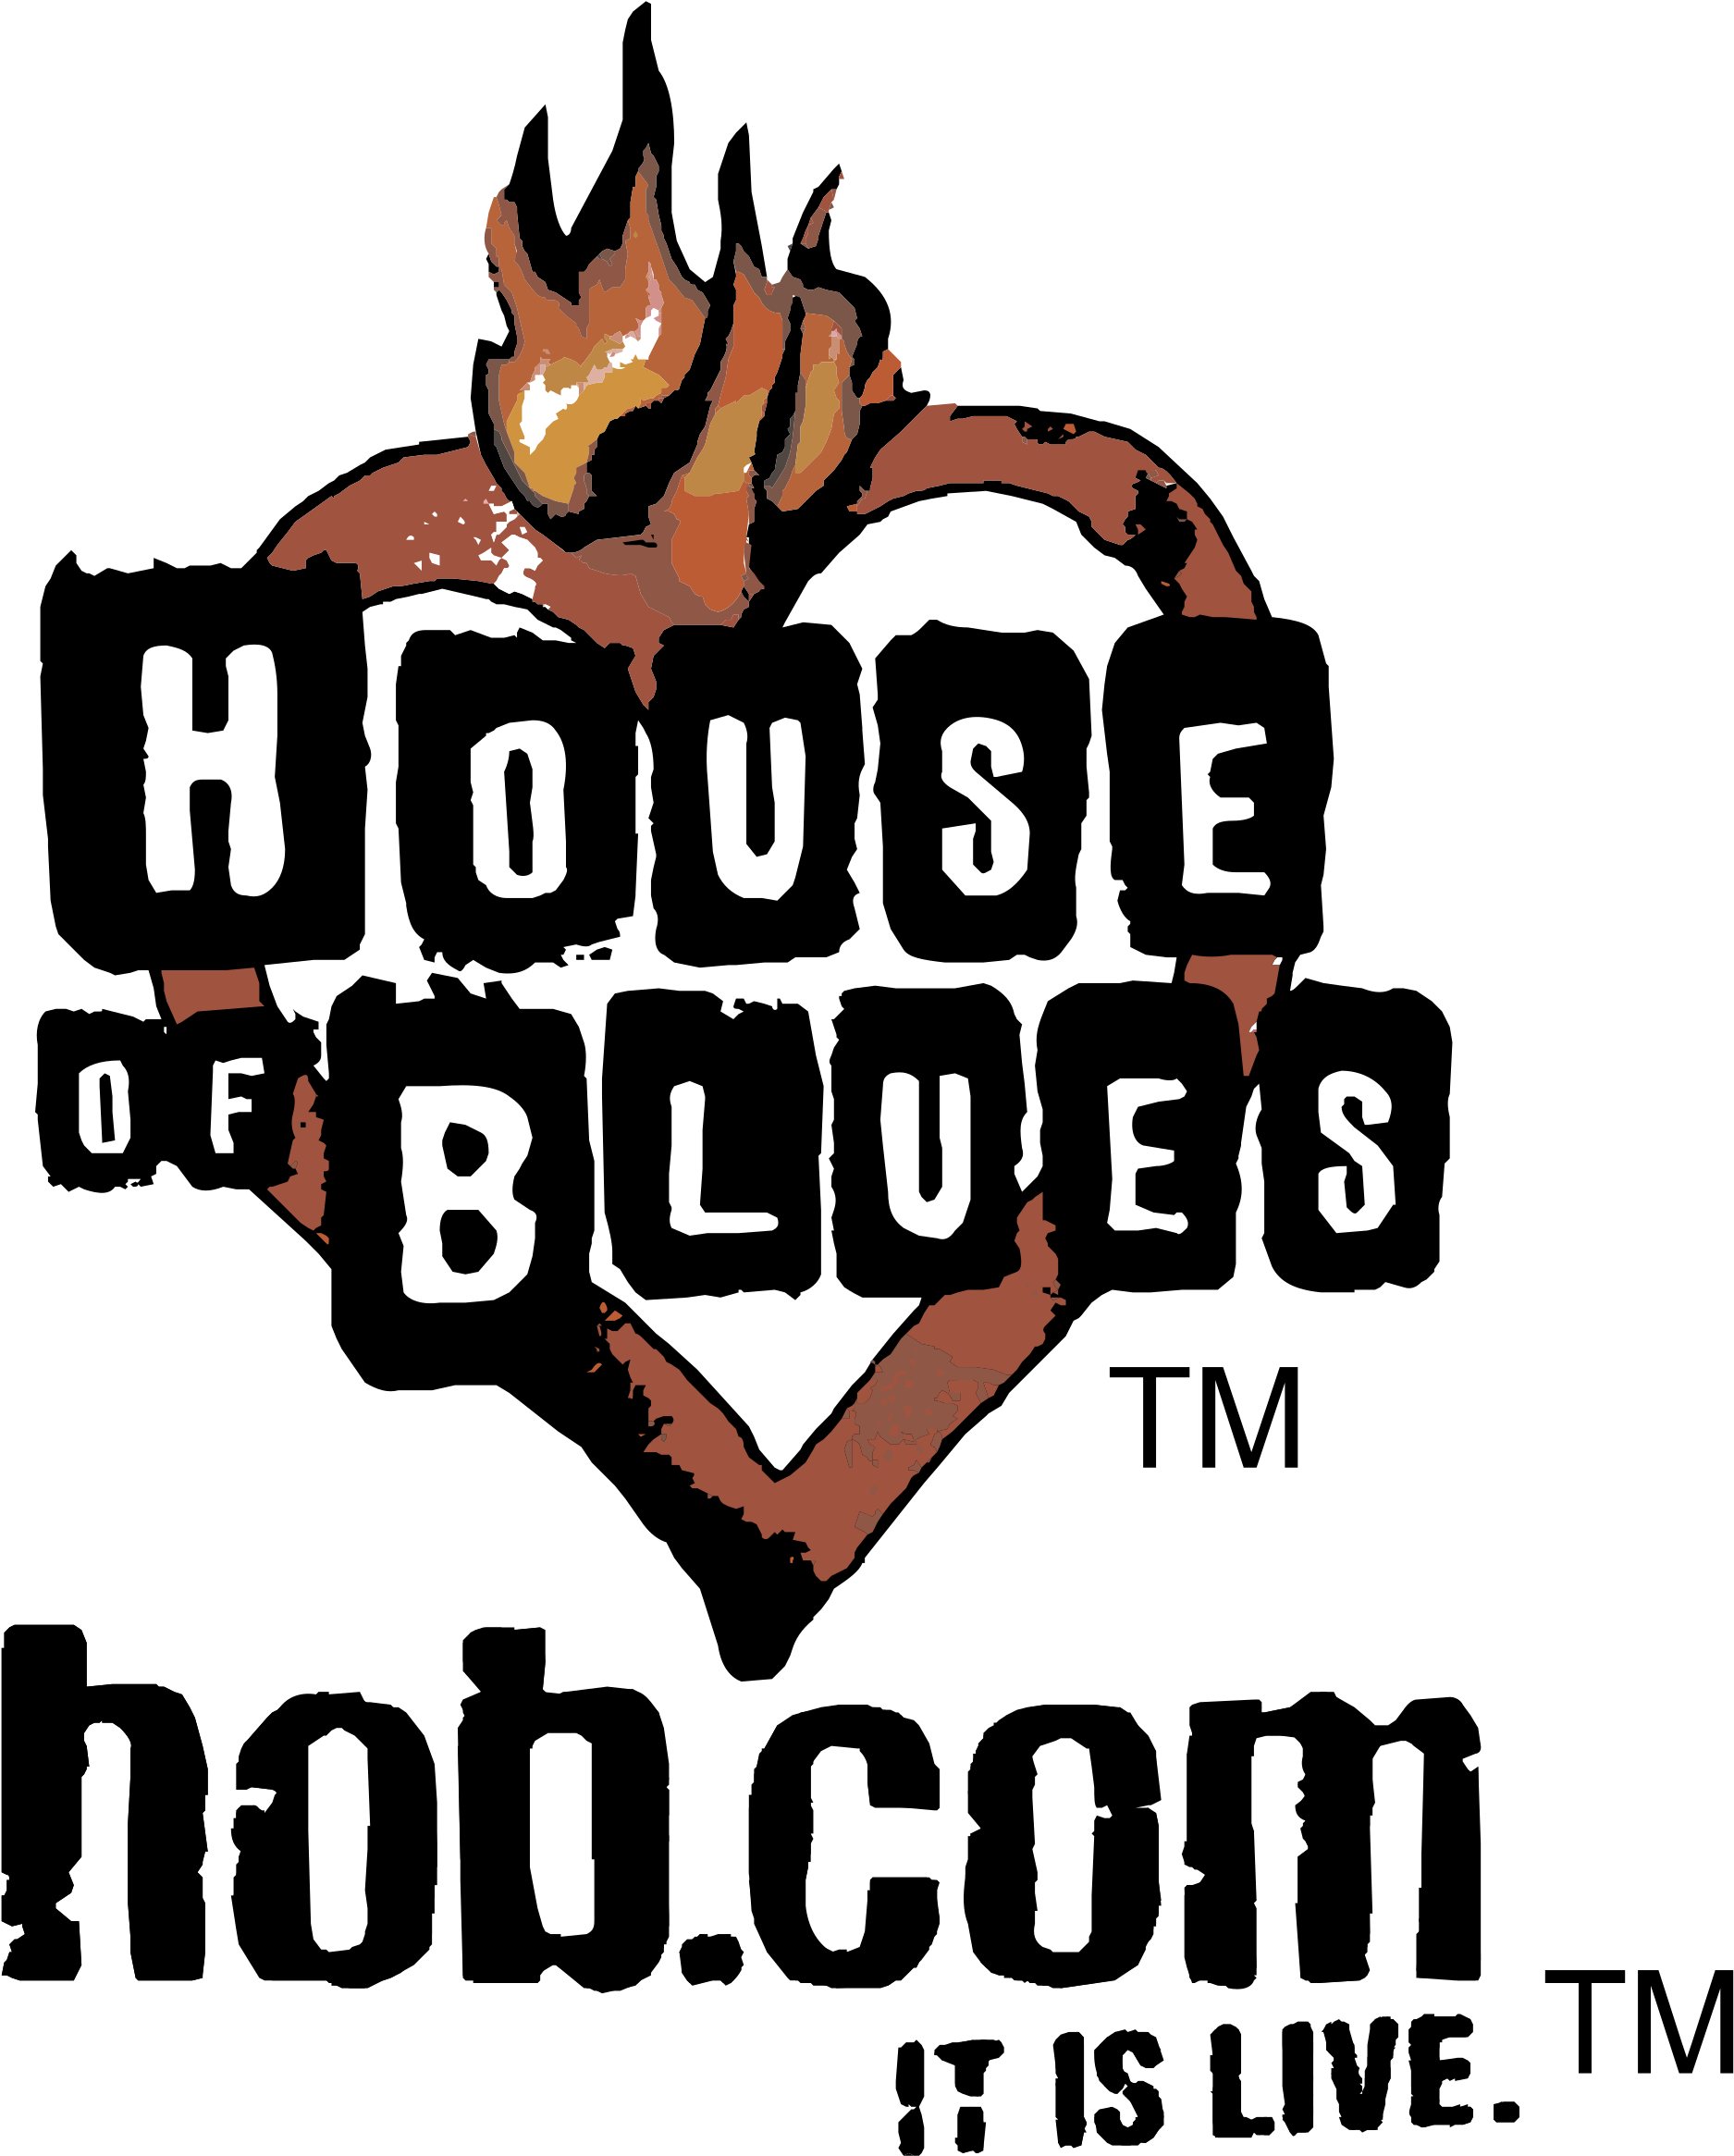 HD House Of Blues Logo Png Transparent.